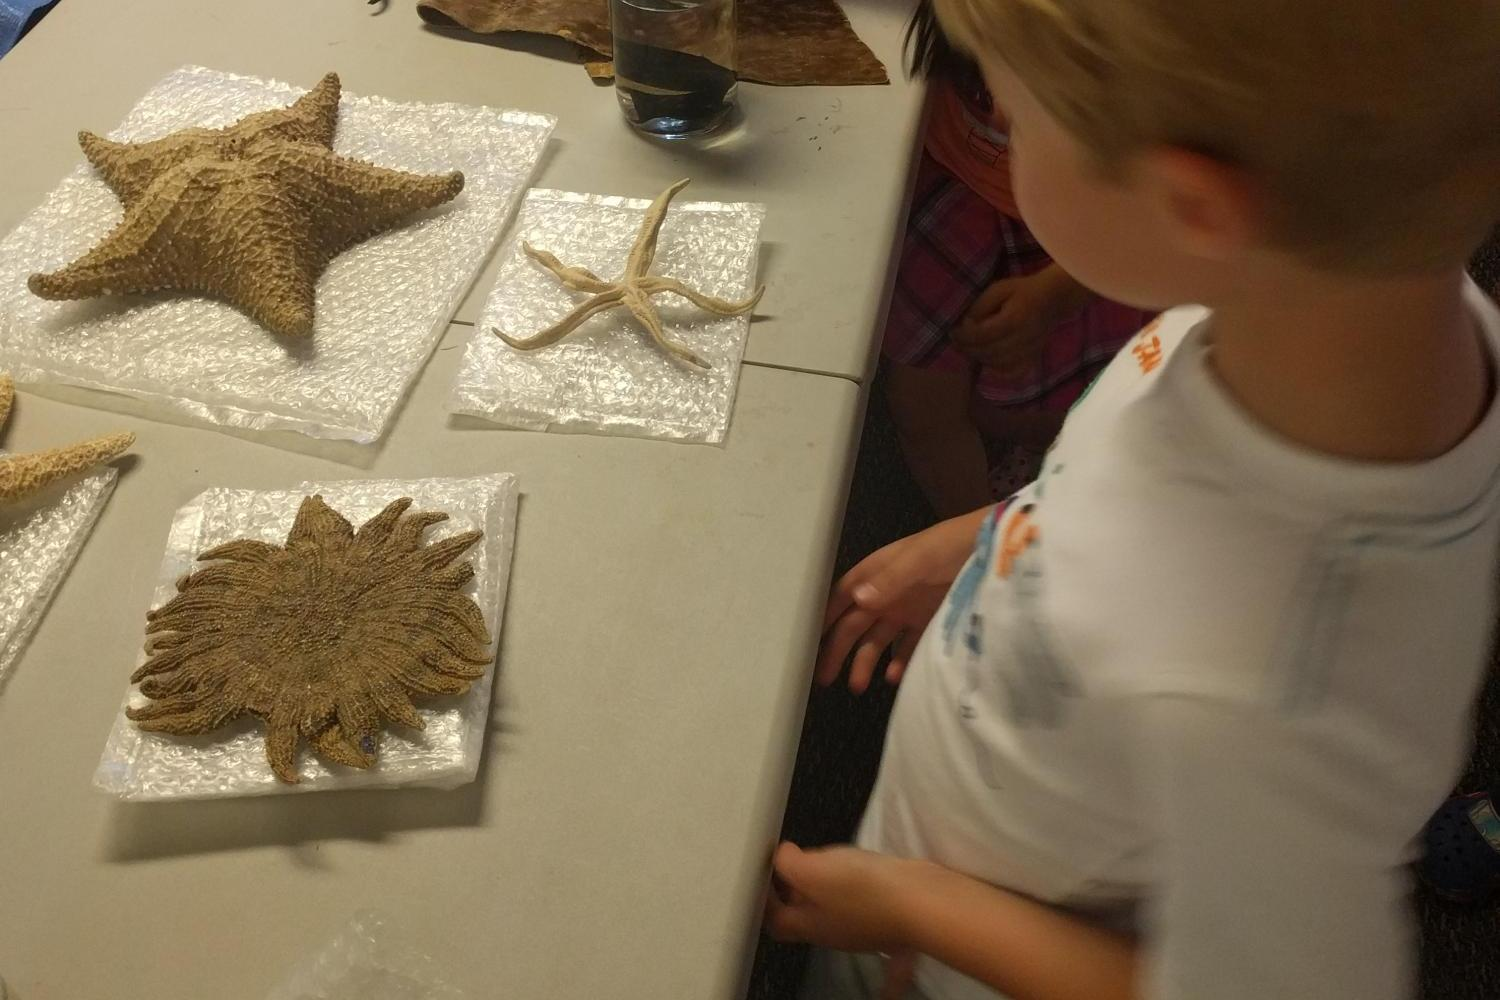 Student looking at starfish specimens